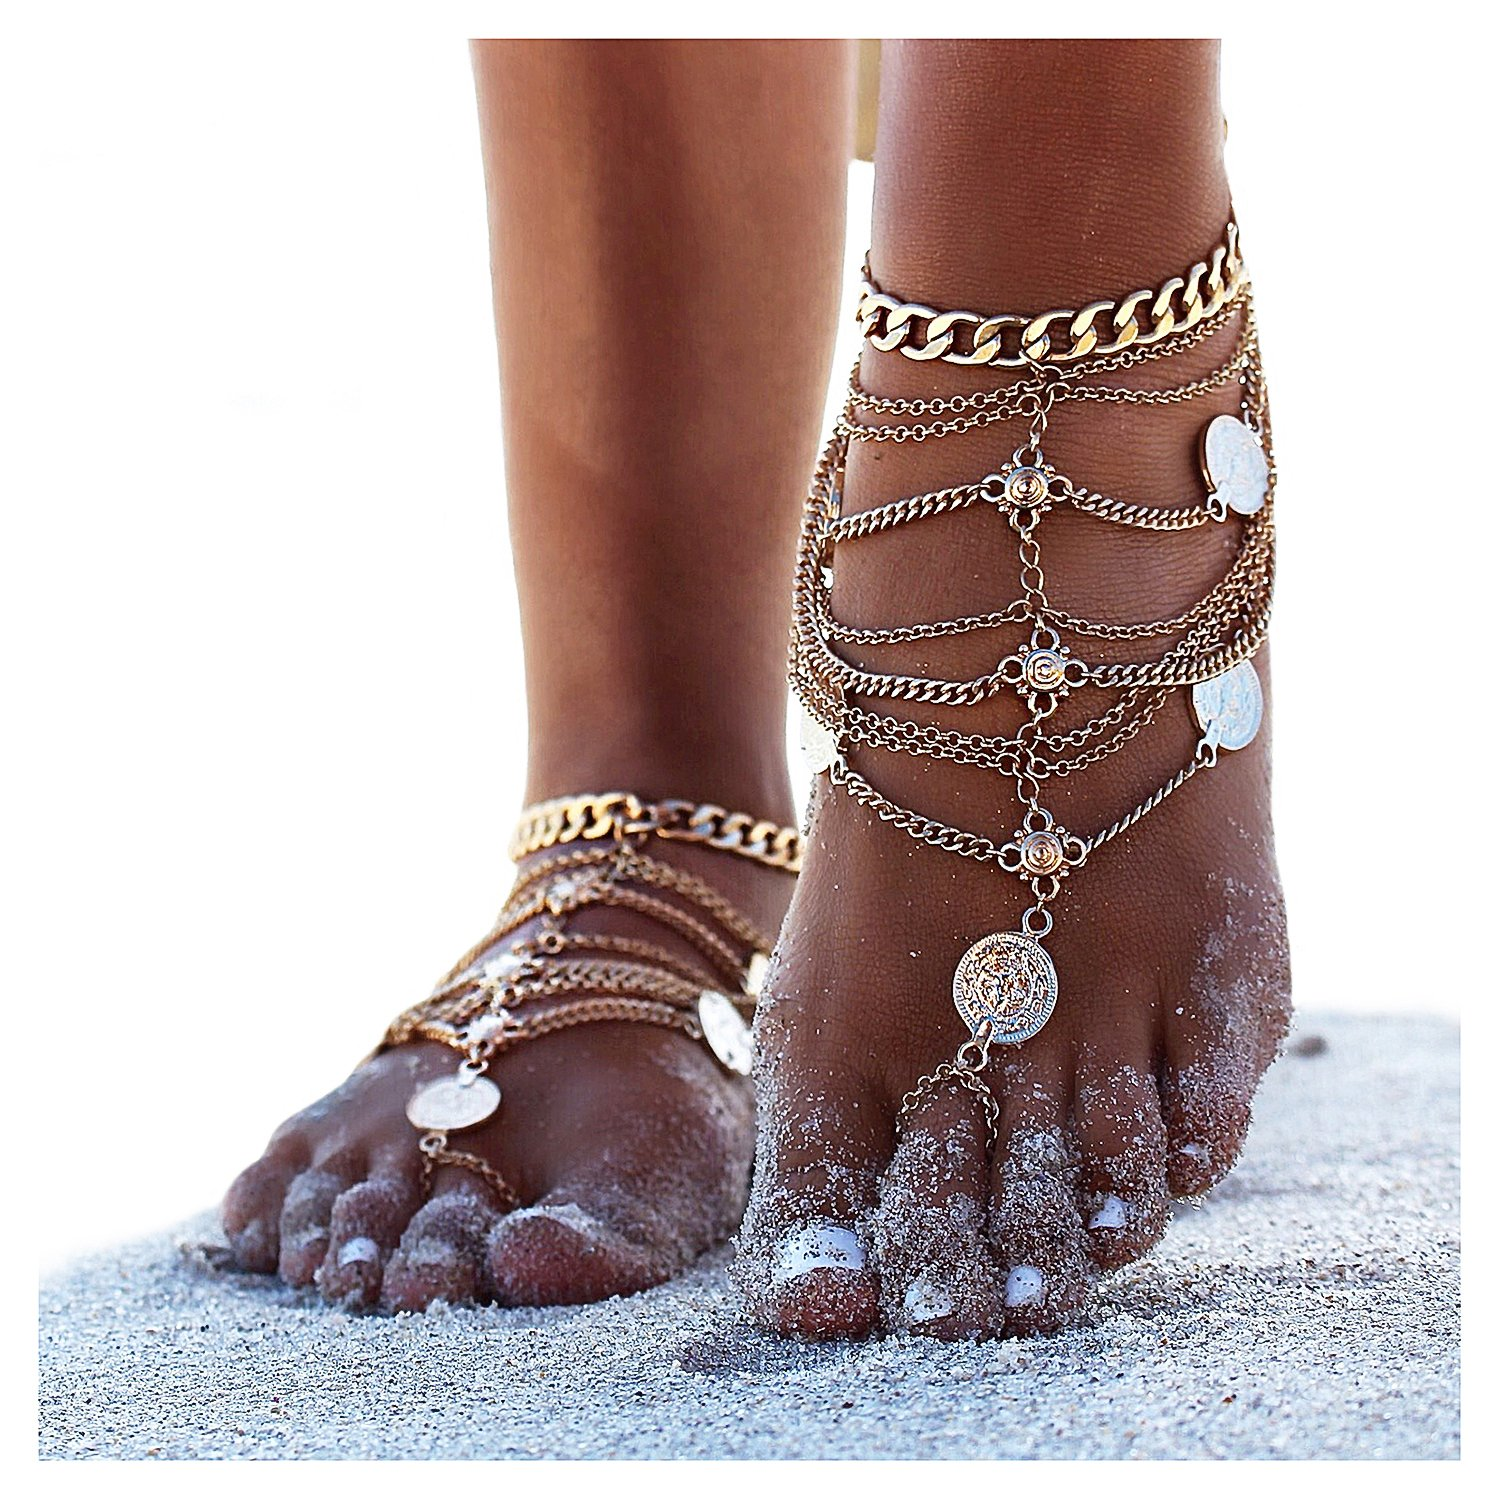 Gleamart Multi-layer Retro Punk Coins Decor Anklets Tassels Beach Ankle Chains Barefoot Sandals with Toe Rings Gold